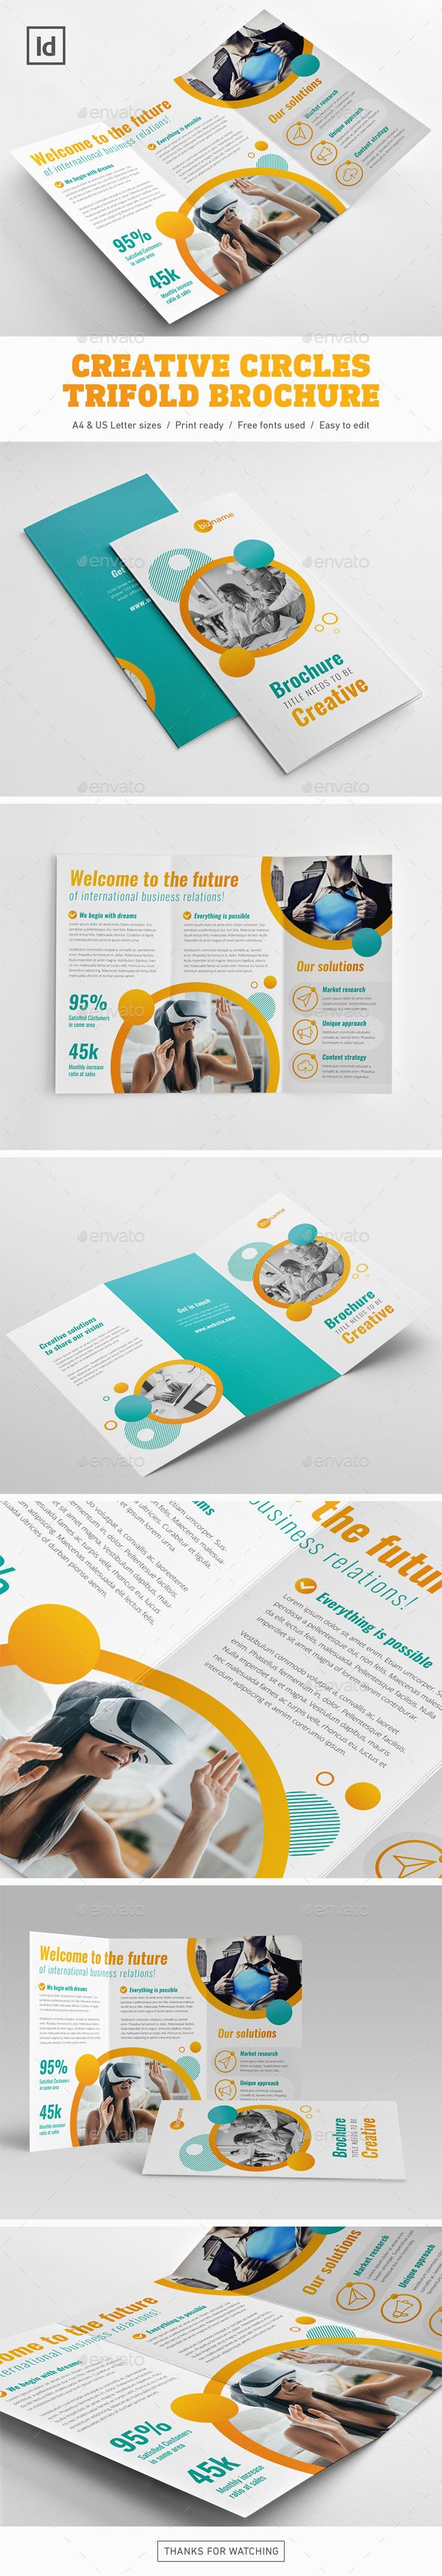 17 best ideas about travel brochure template on pinterest for Travel brochure template ks2